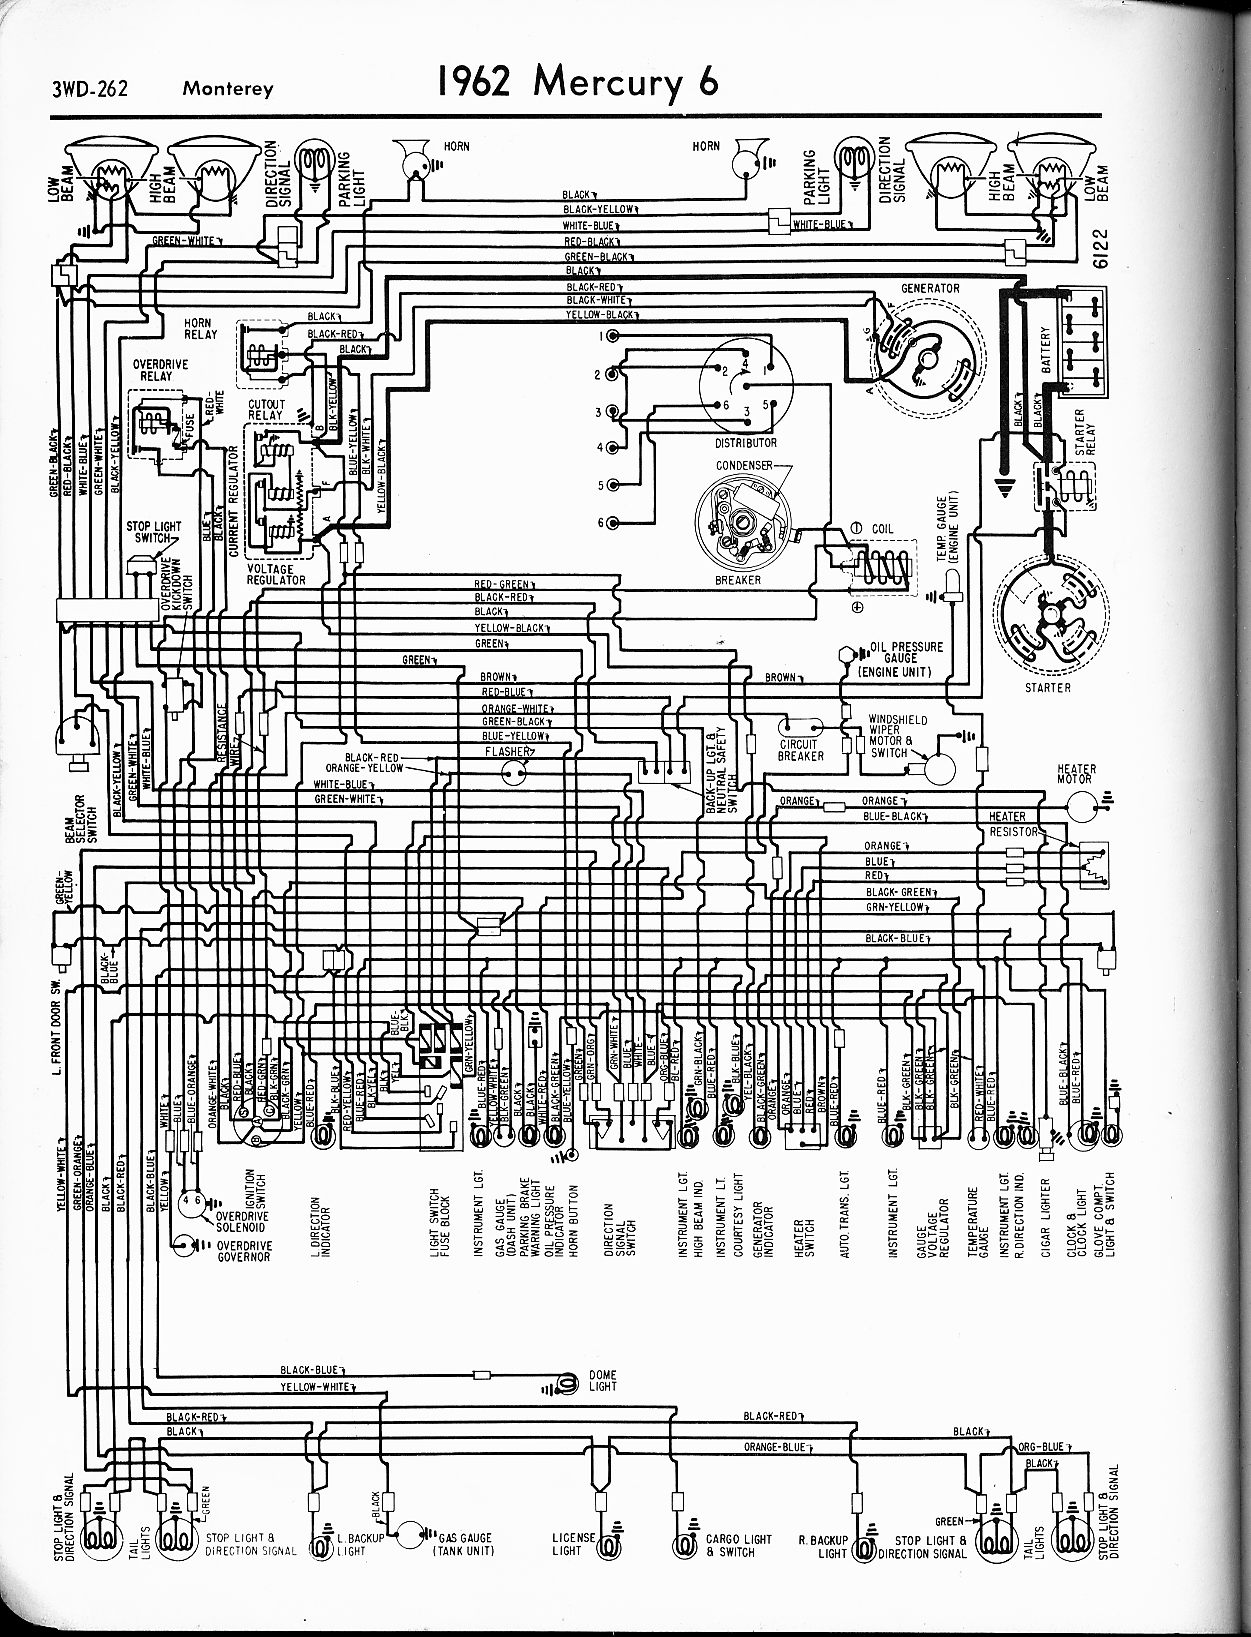 Ford Bf Wiring Diagram | Wiring Diagram  Ford Ranchero Wiring Diagram on amc amx wiring diagrams, chrysler lebaron wiring diagrams, volvo 240 wiring diagrams, dodge dakota wiring diagrams, jeep wrangler wiring diagrams, imperial wiring diagrams, ford ranchero seats, peterbilt wiring diagrams, ford ranchero engine, oldsmobile alero wiring diagrams, mercury sable wiring diagrams, ford ranchero parts, jeep cj wiring diagrams, dodge ramcharger wiring diagrams, jeep patriot wiring diagrams, pontiac grand prix wiring diagrams, oldsmobile 98 wiring diagrams, plymouth barracuda wiring diagrams, chrysler concorde wiring diagrams, saab 9-3 wiring diagrams,